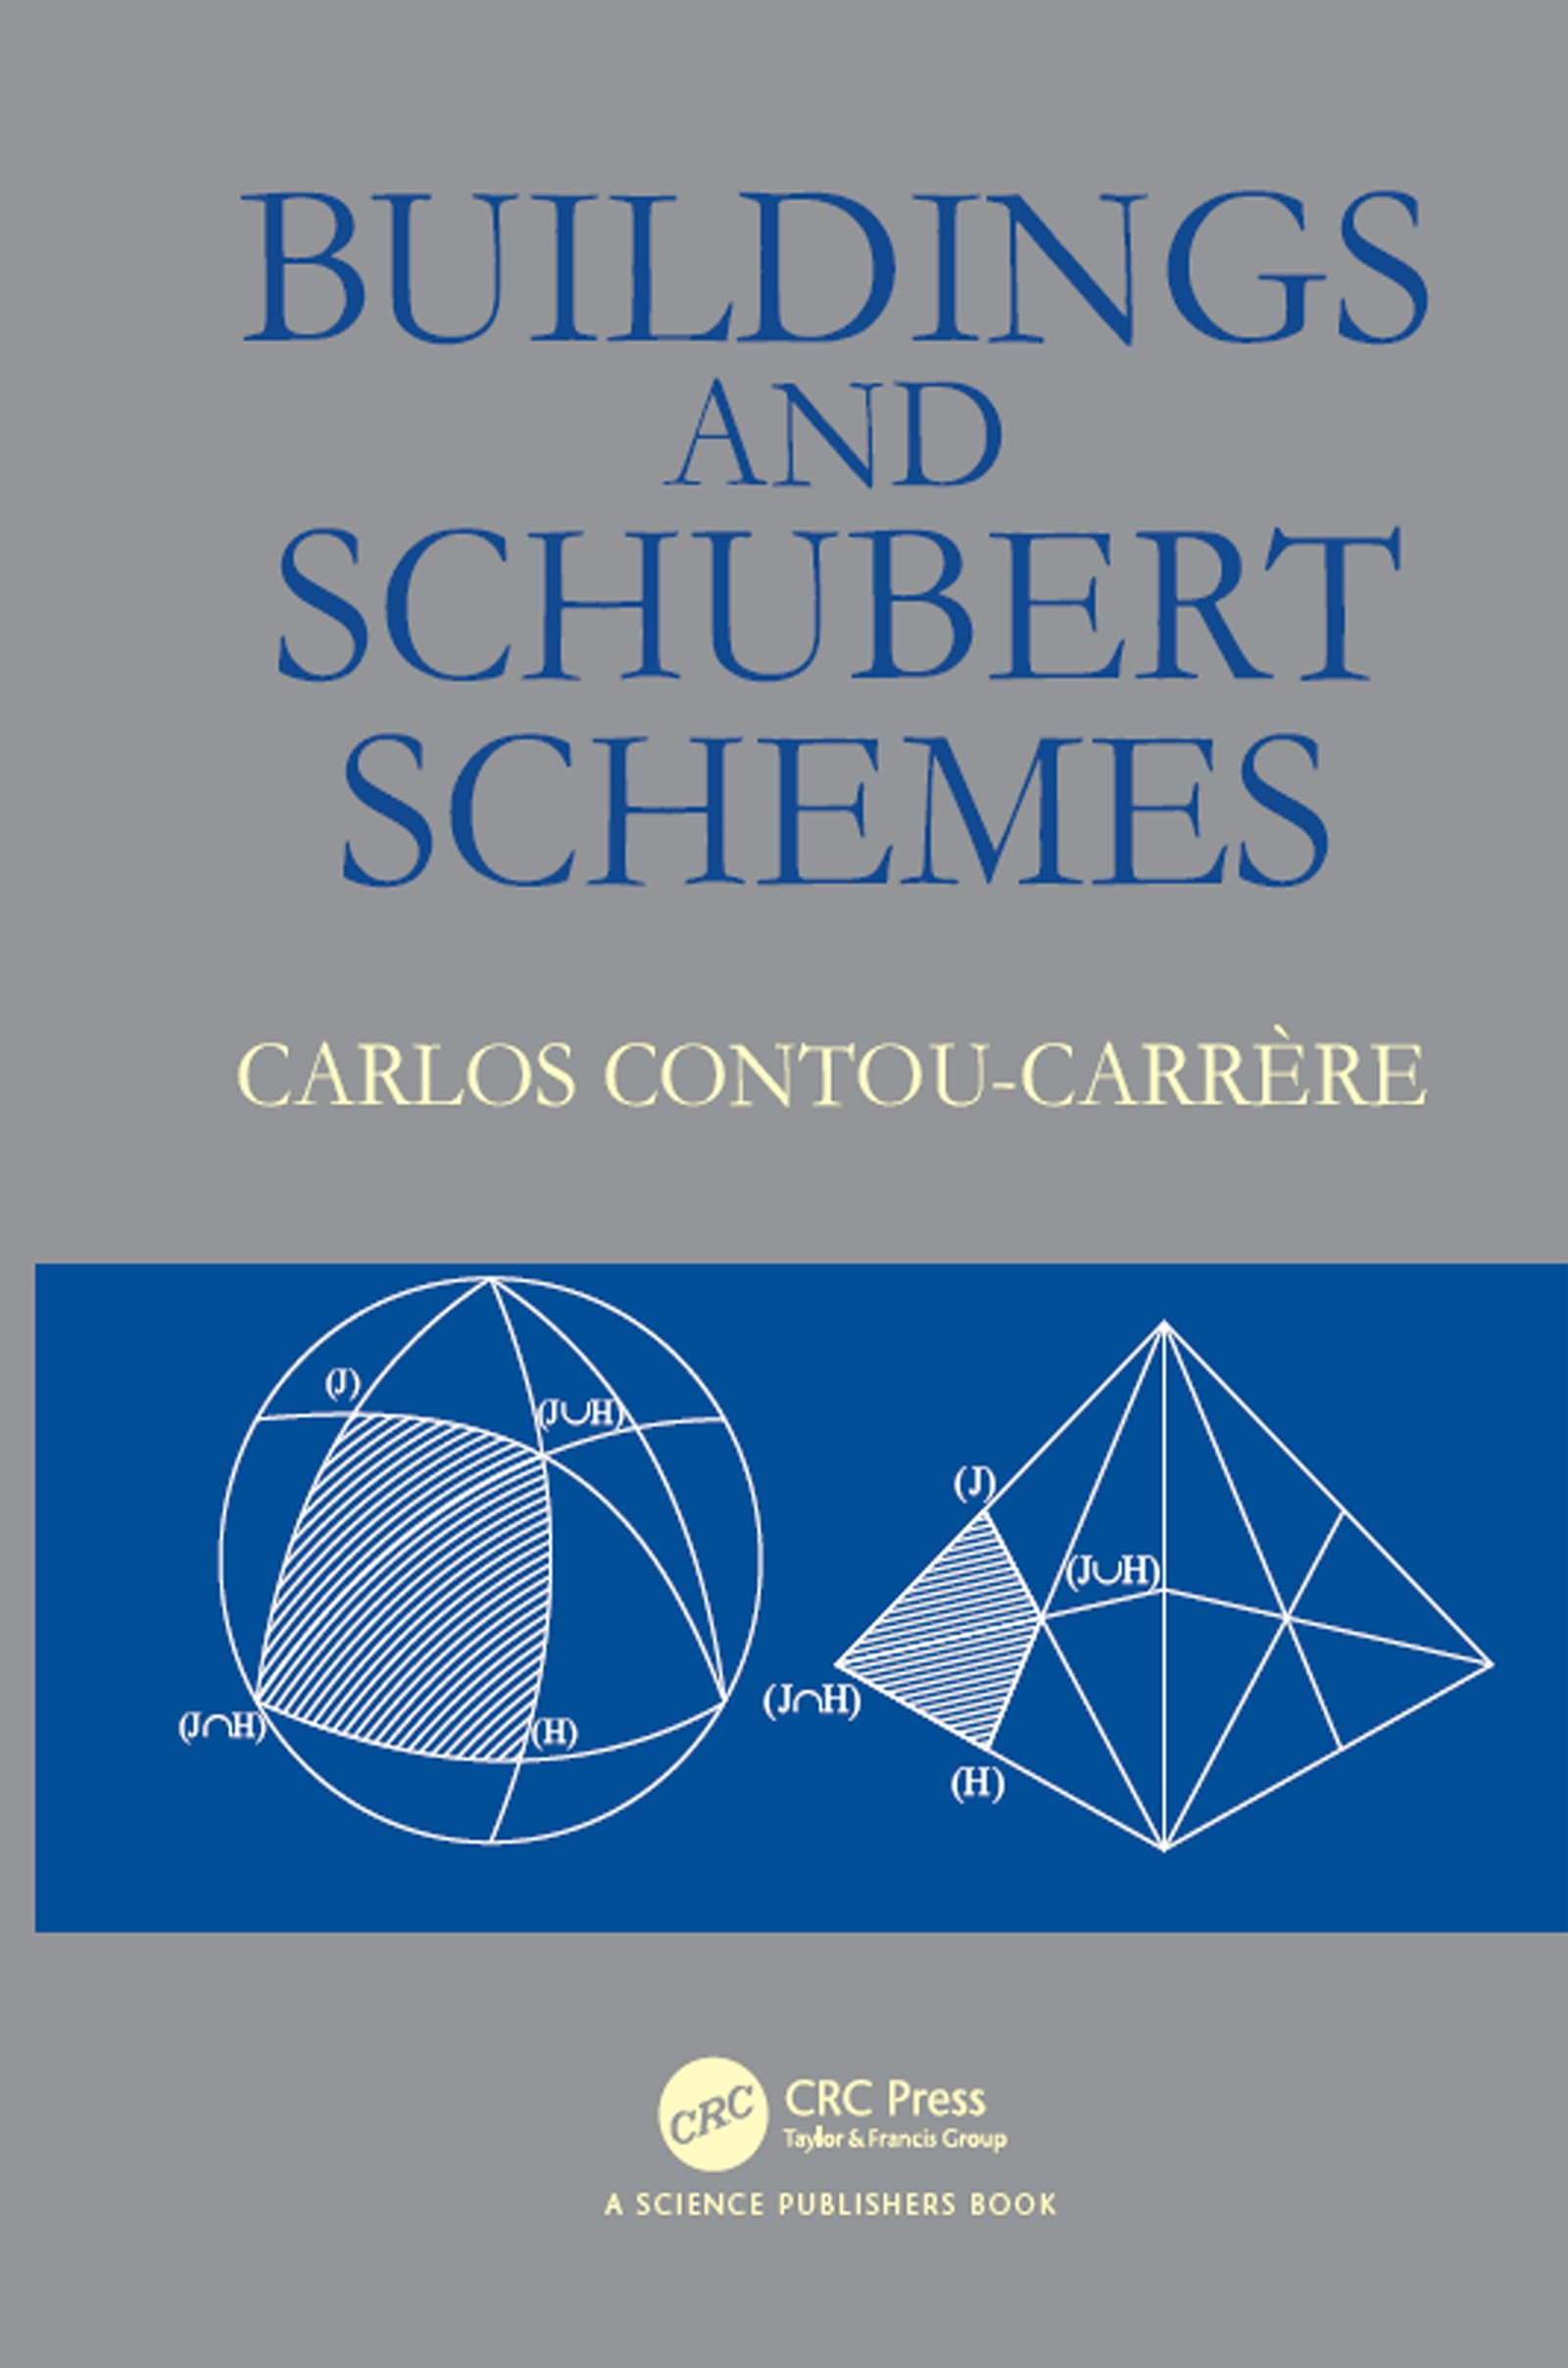 Buildings and Schubert Schemes